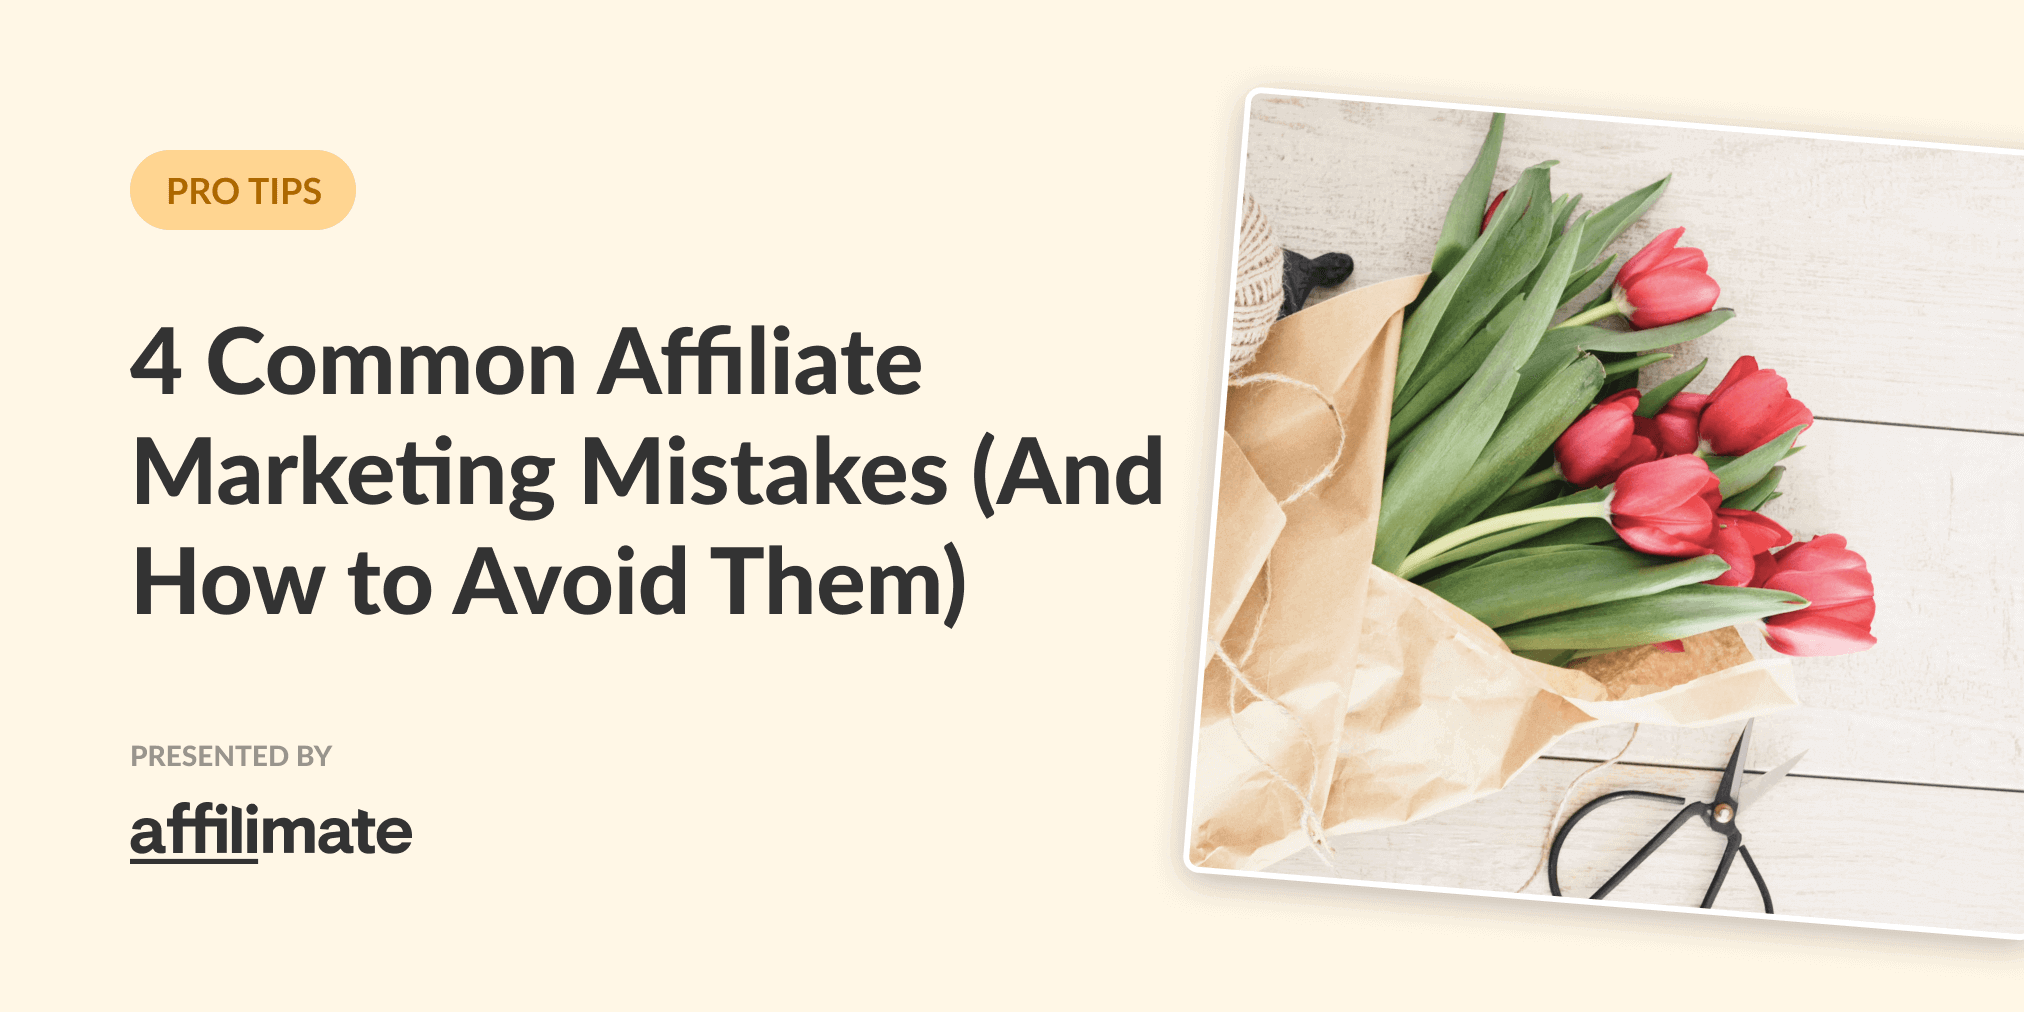 4 Common Affiliate Marketing Mistakes (And How to Fix Them)